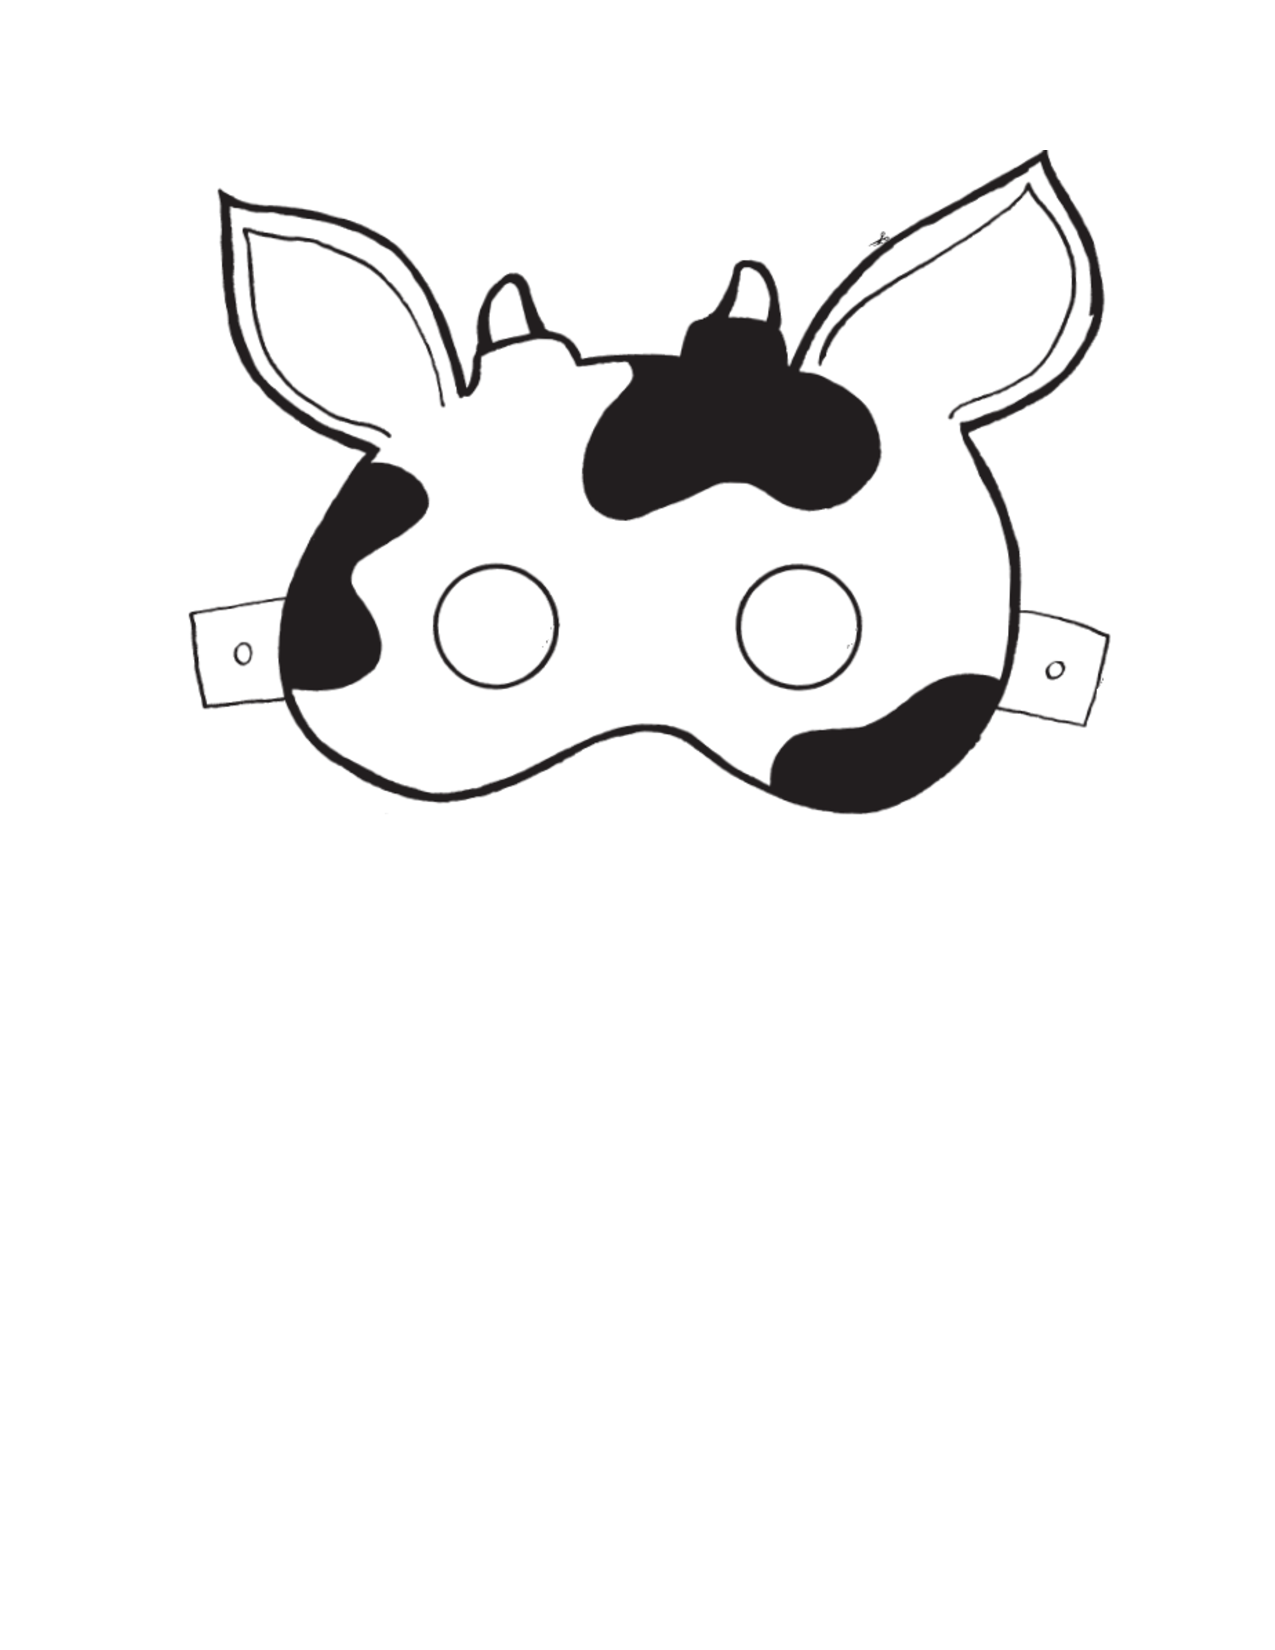 graphic regarding Free Printable Cow Mask known as minor cow mask crafts Cow mask, Printable cow mask